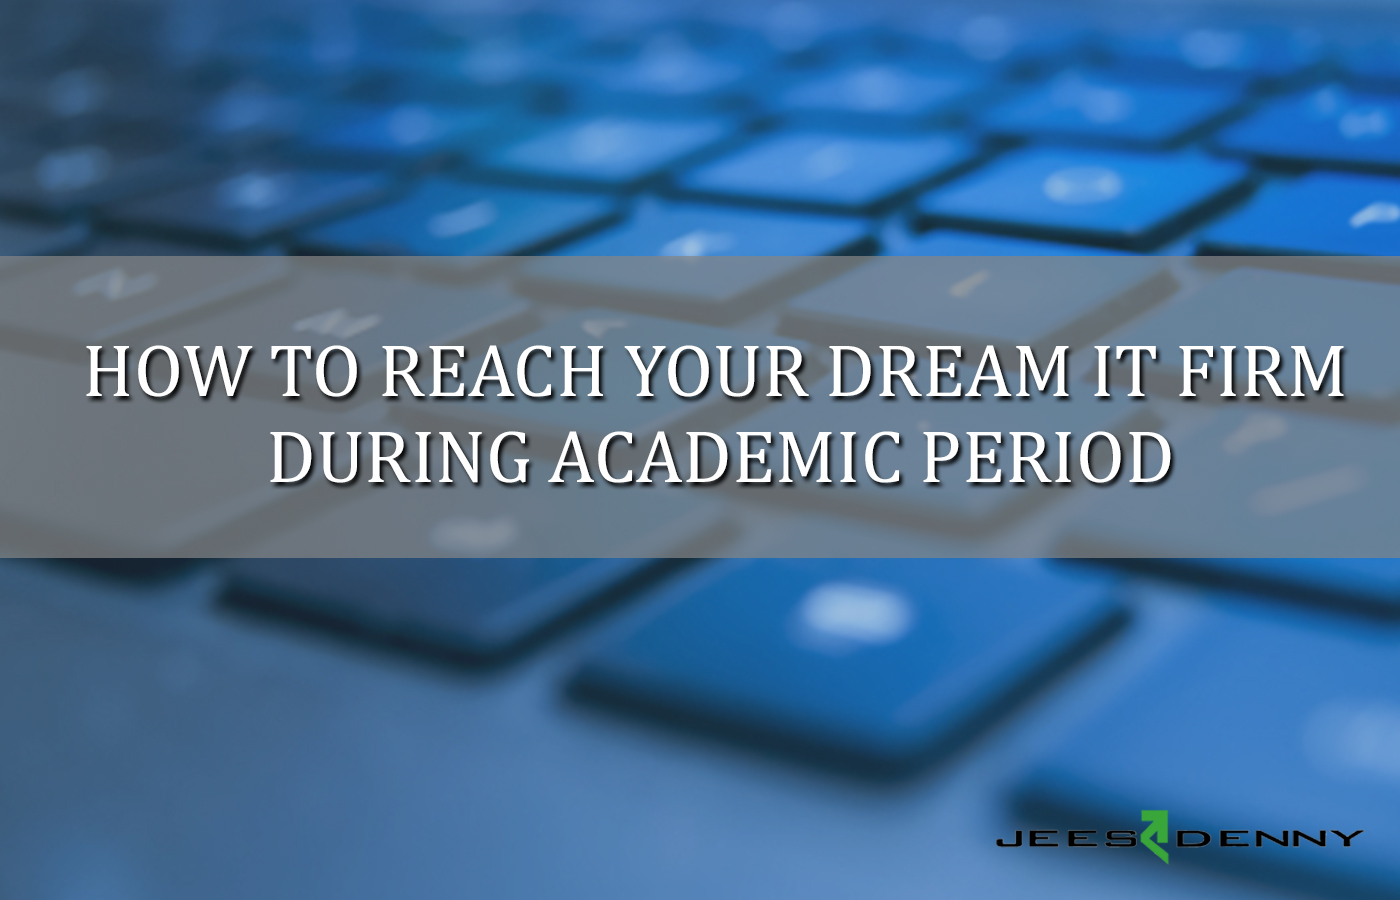 Top 7 Ways to Reach your Dream IT Firm During Academic Period